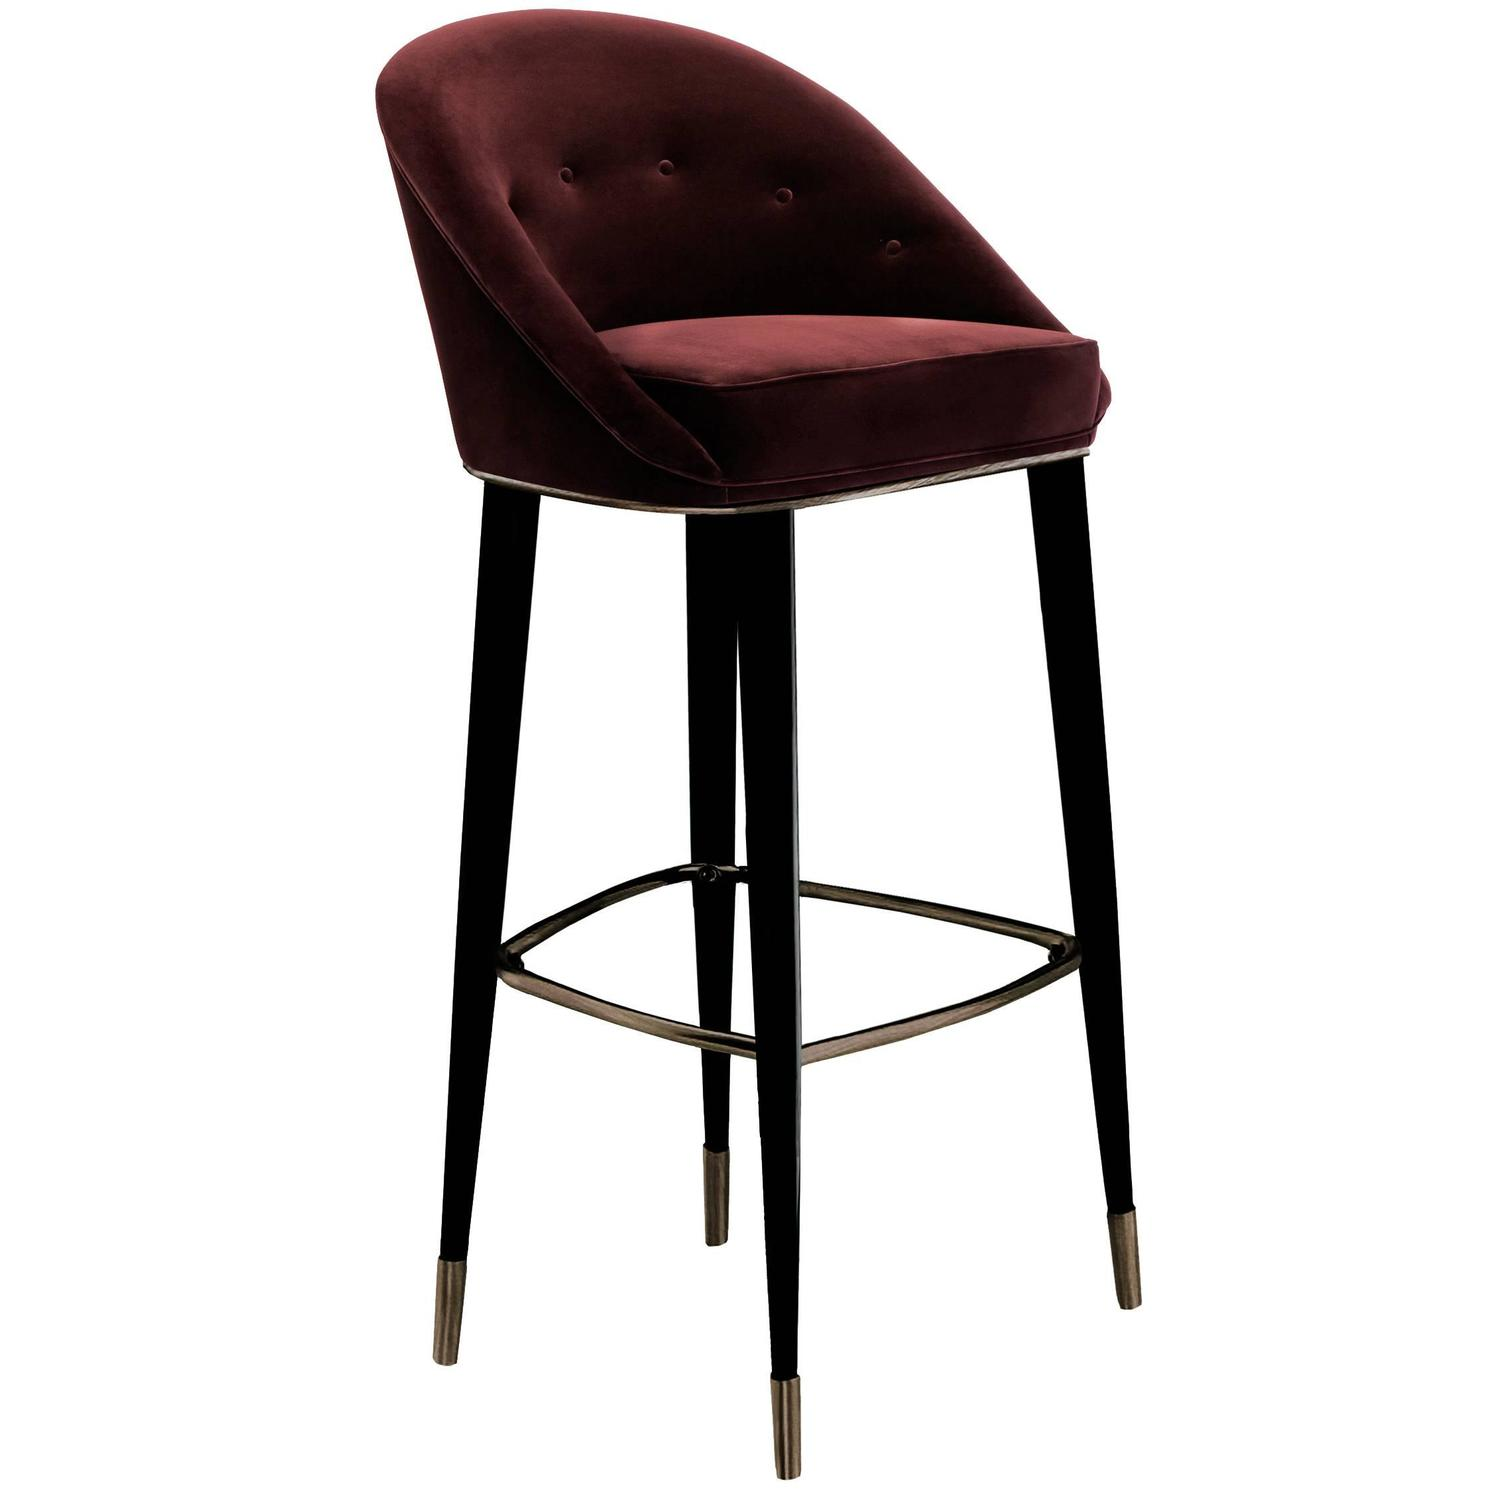 Velvet Bar Stools 32 For Sale on 1stdibs